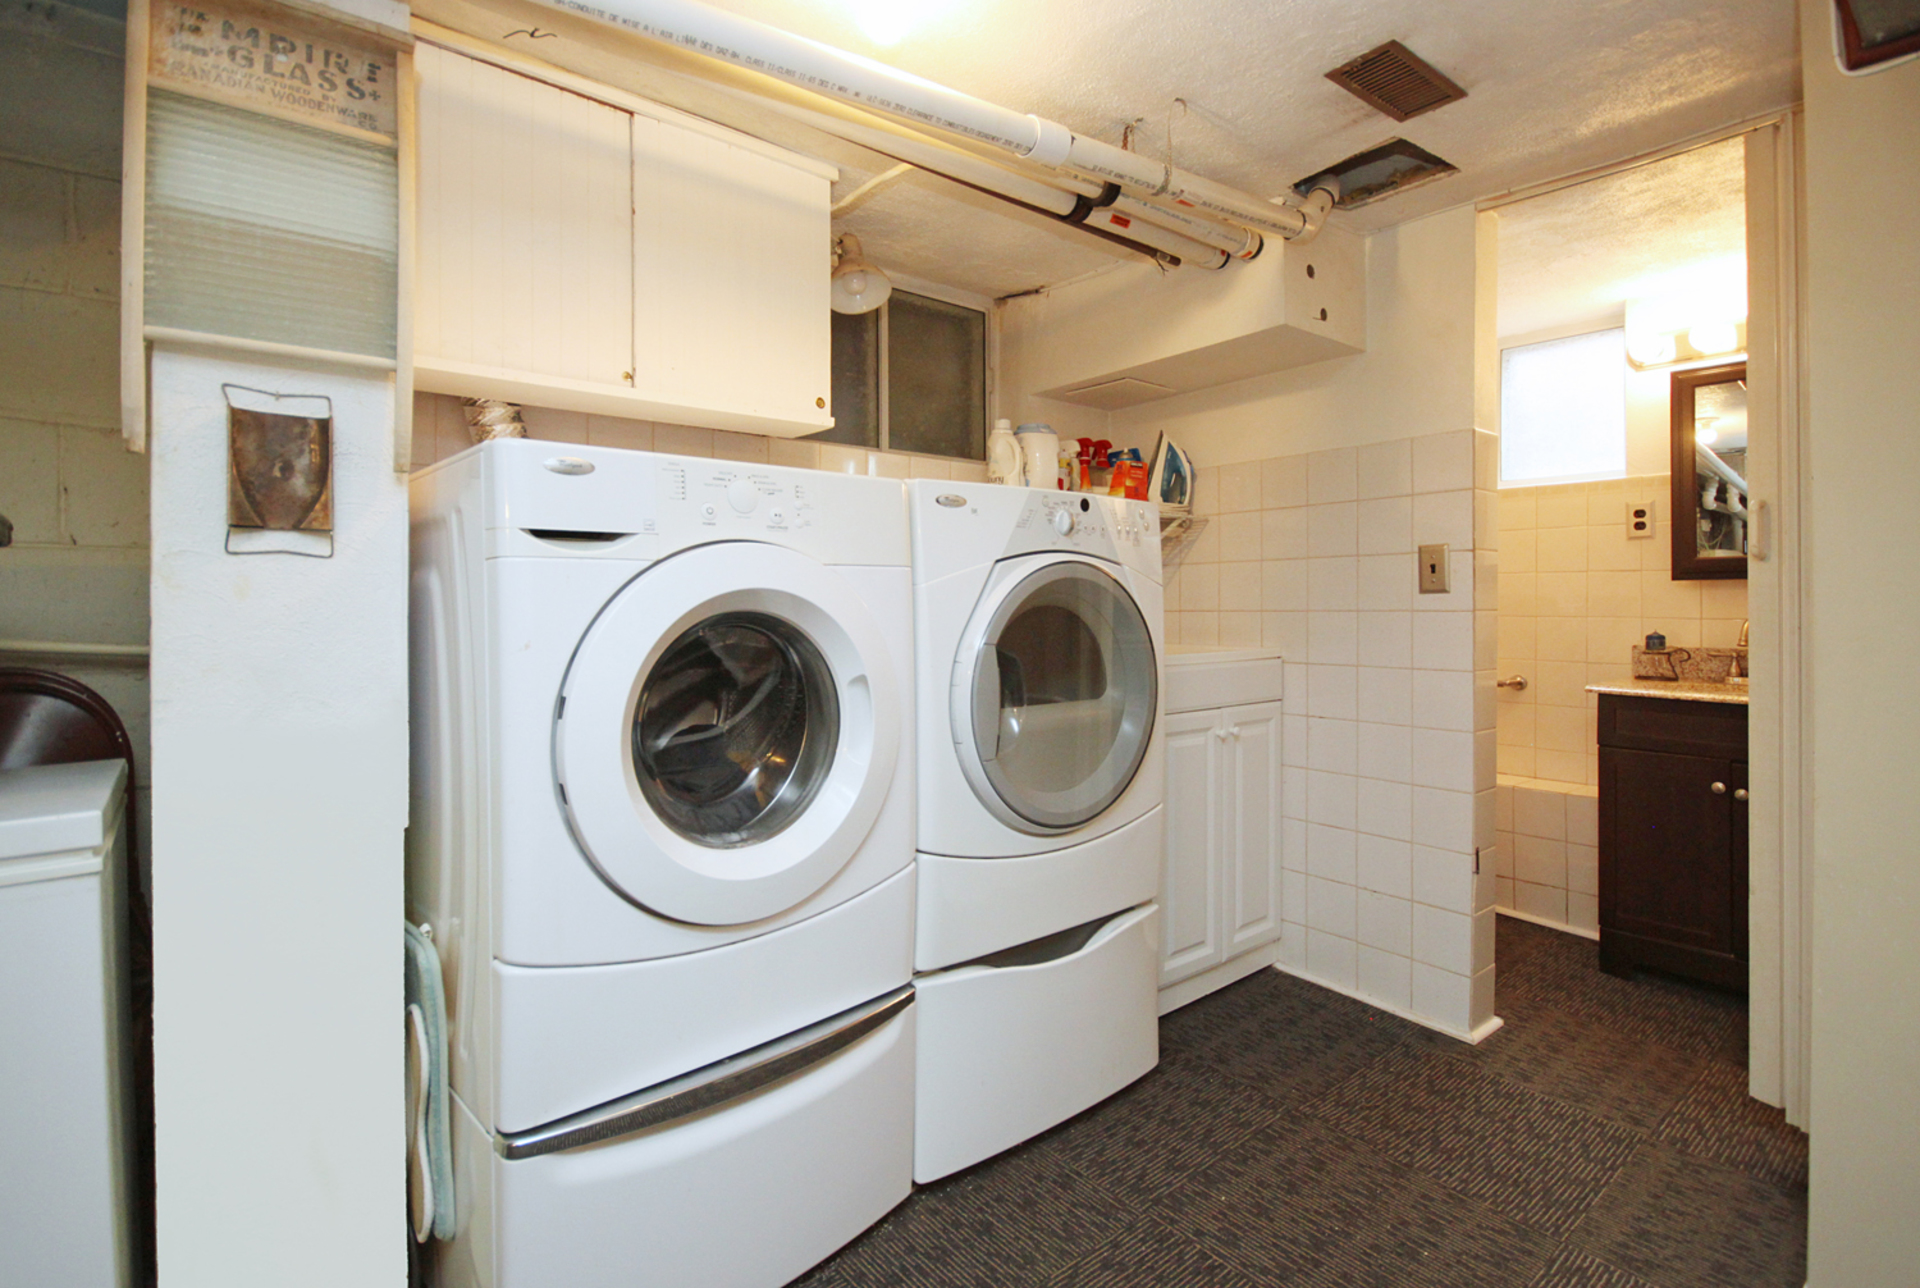 Laundry Room at 93 Duncairn Road, Banbury-Don Mills, Toronto